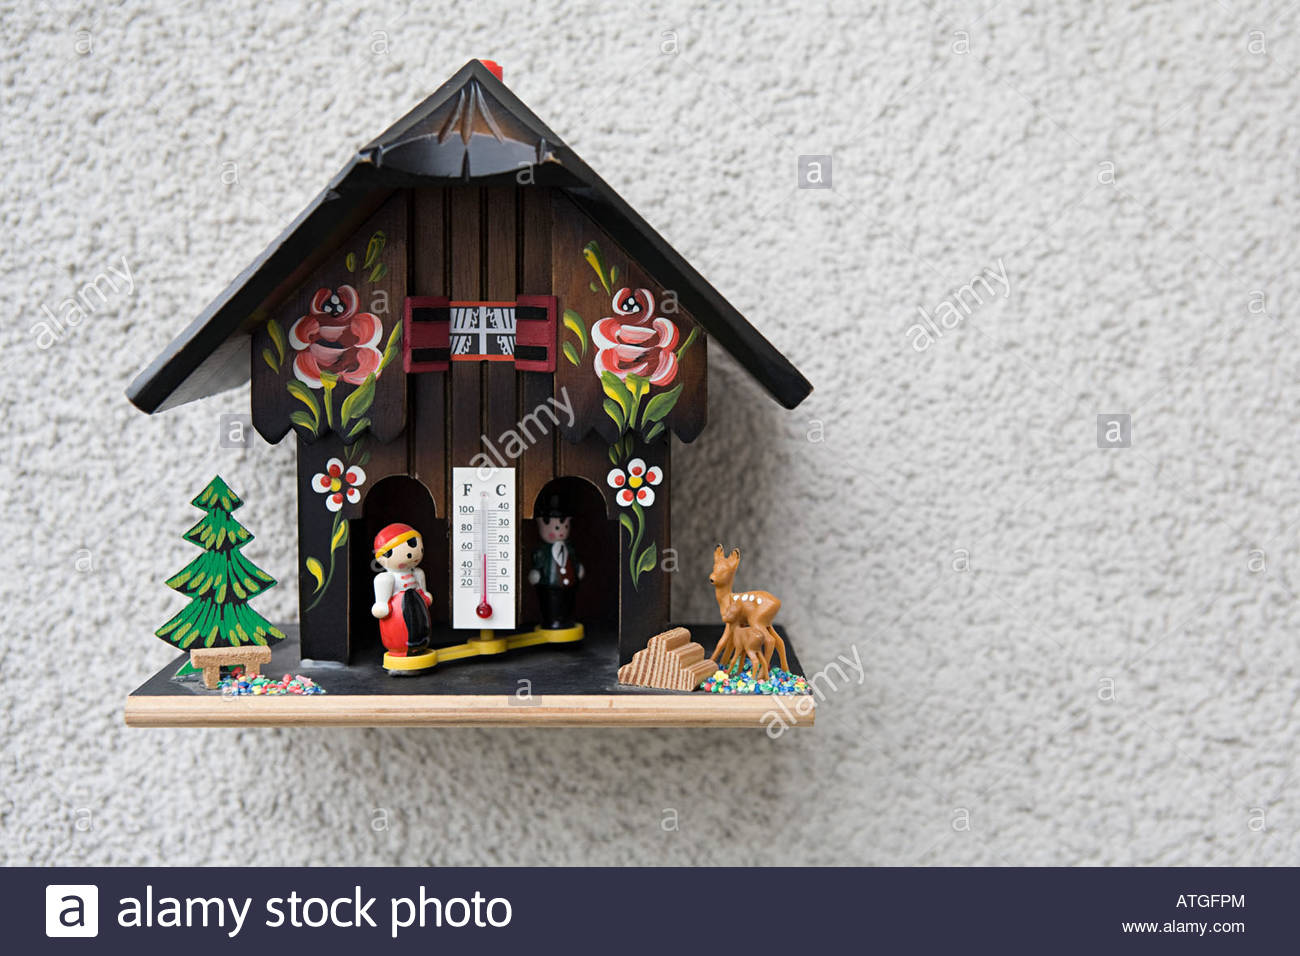 Weather house - Stock Image